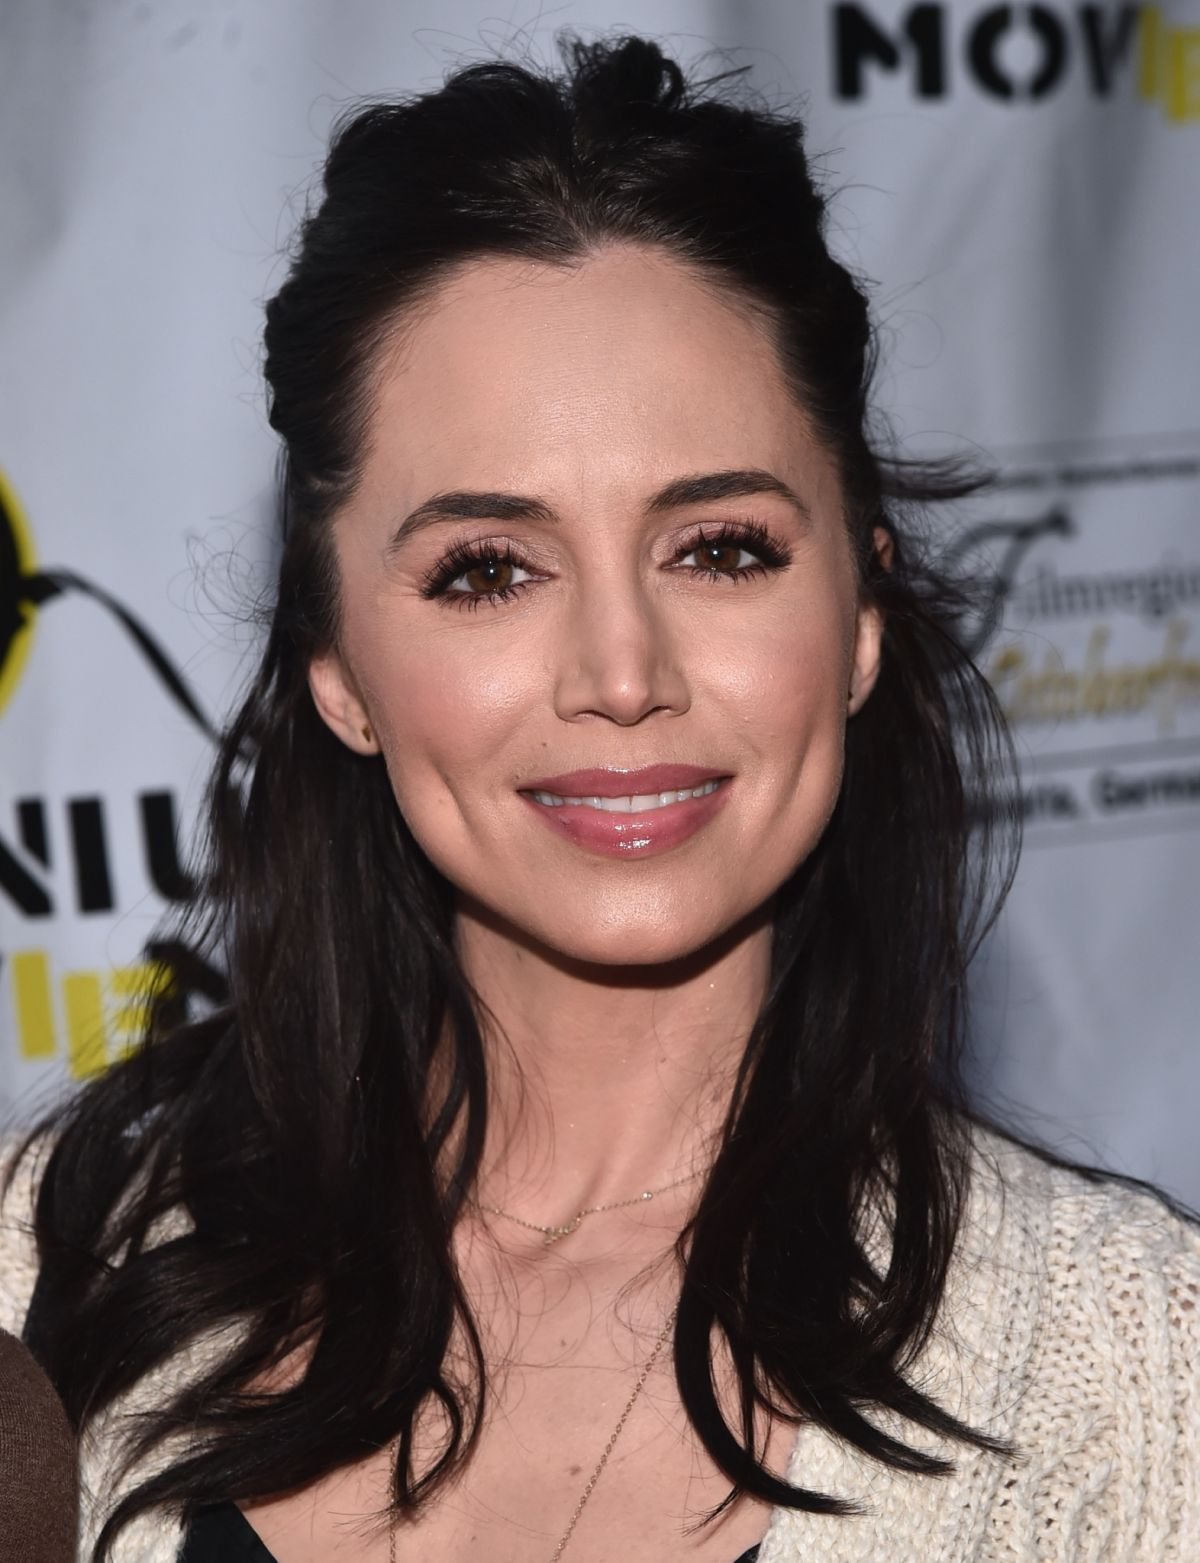 ELIZA DUSHKU at